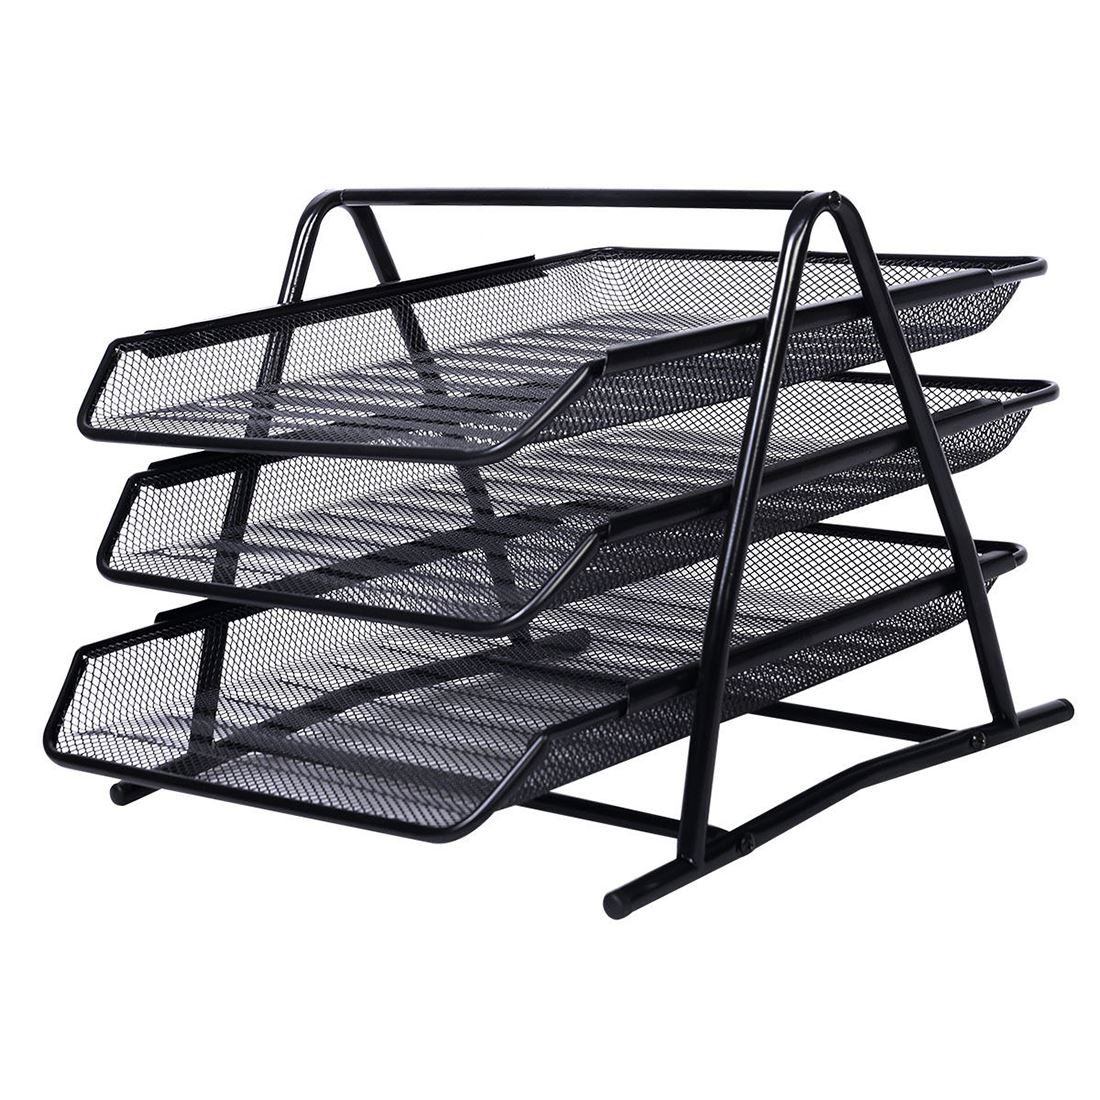 Design Ideas Mesh Letter Tray: A4 Wire Mesh Filing Tray Black Silver 3-4 Tier Document